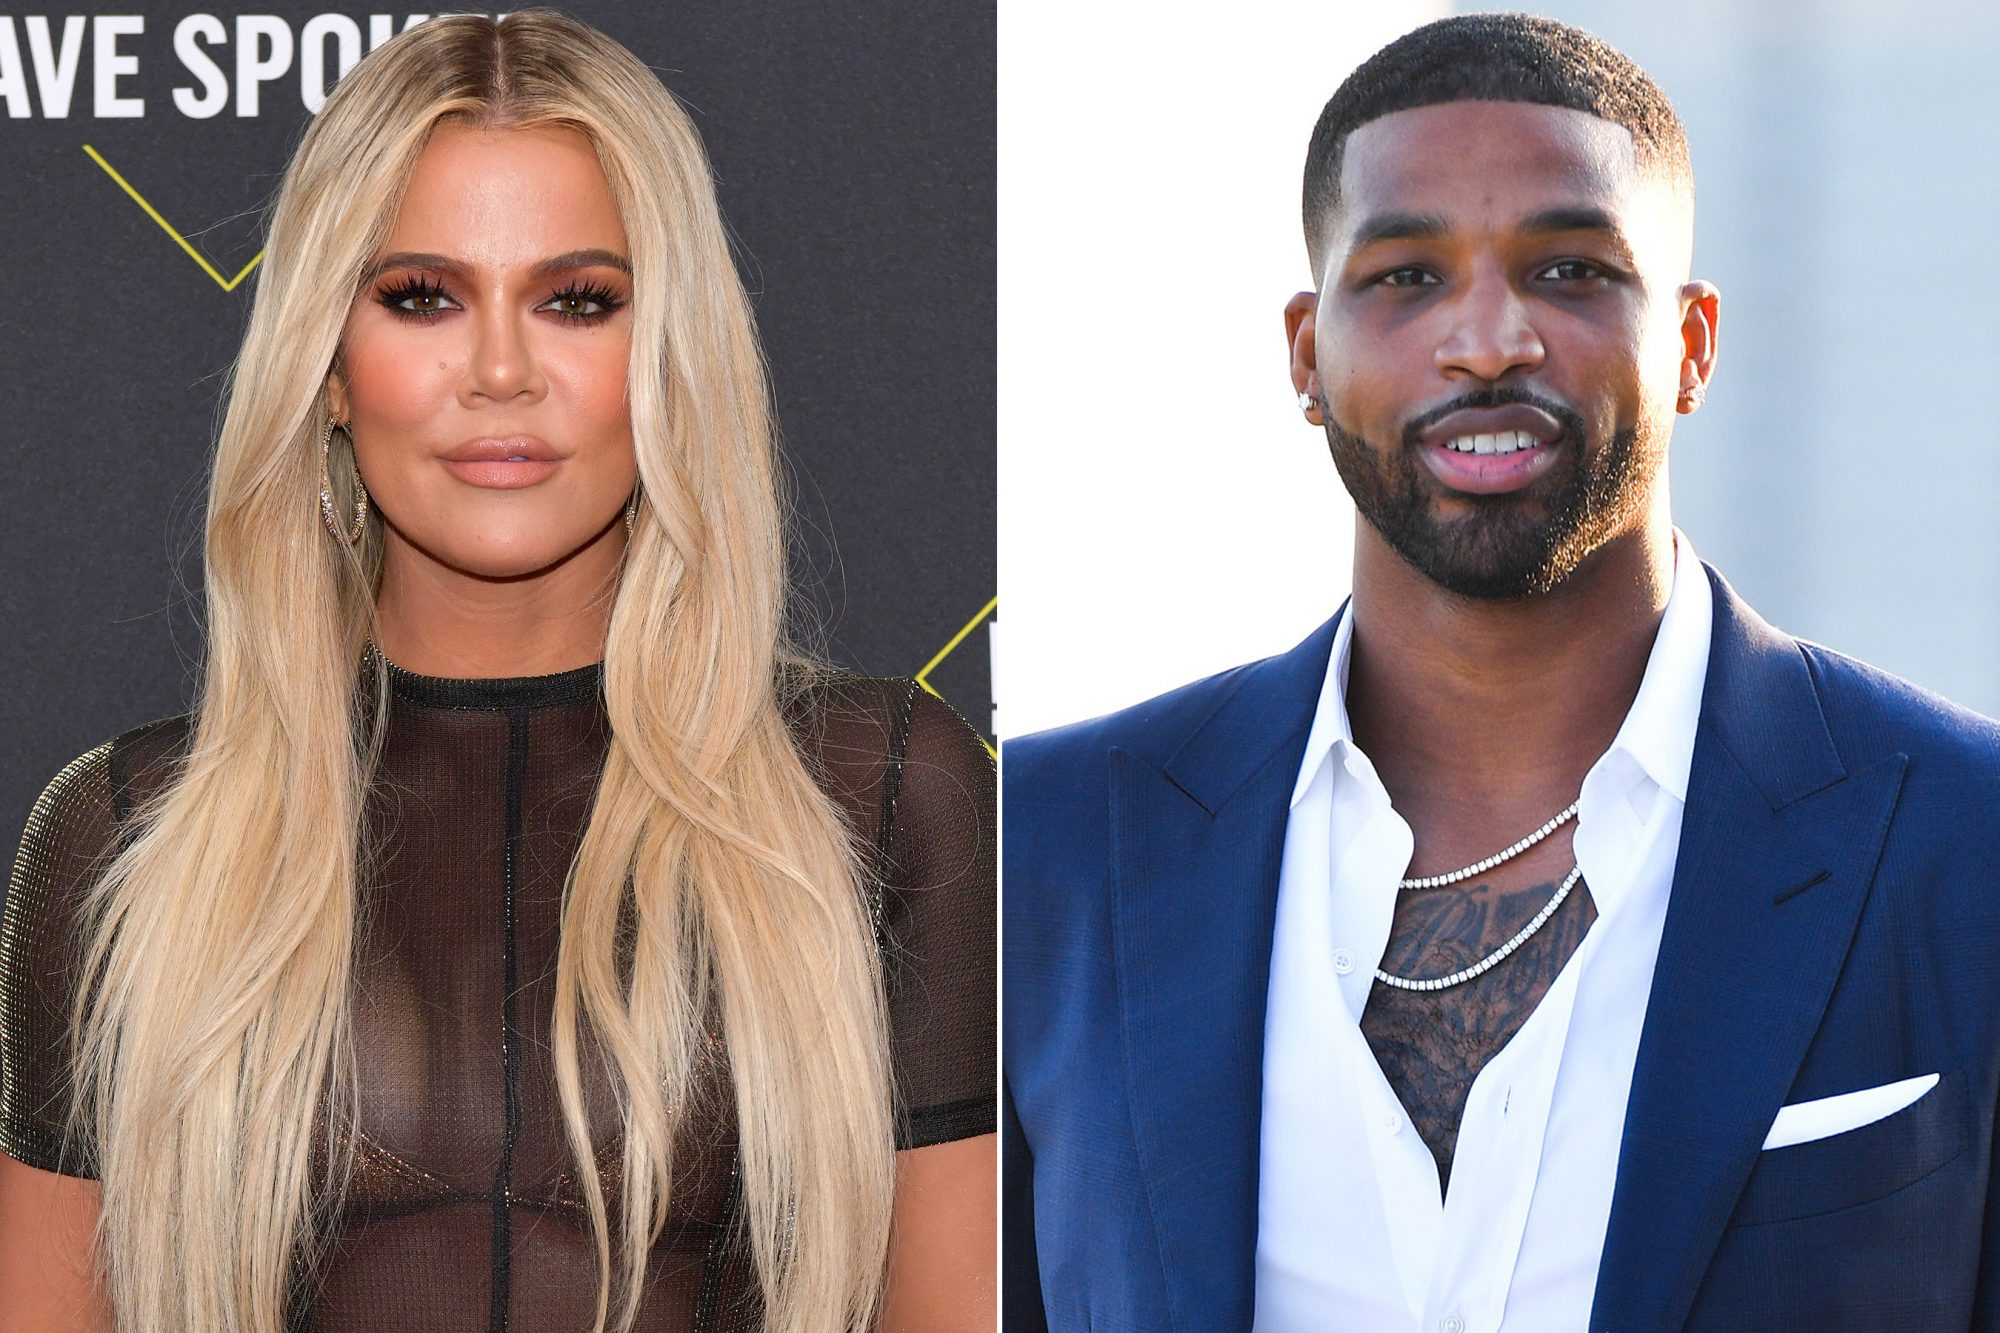 Khloé Kardashian, Tristan Thompson are giving their relationship another try